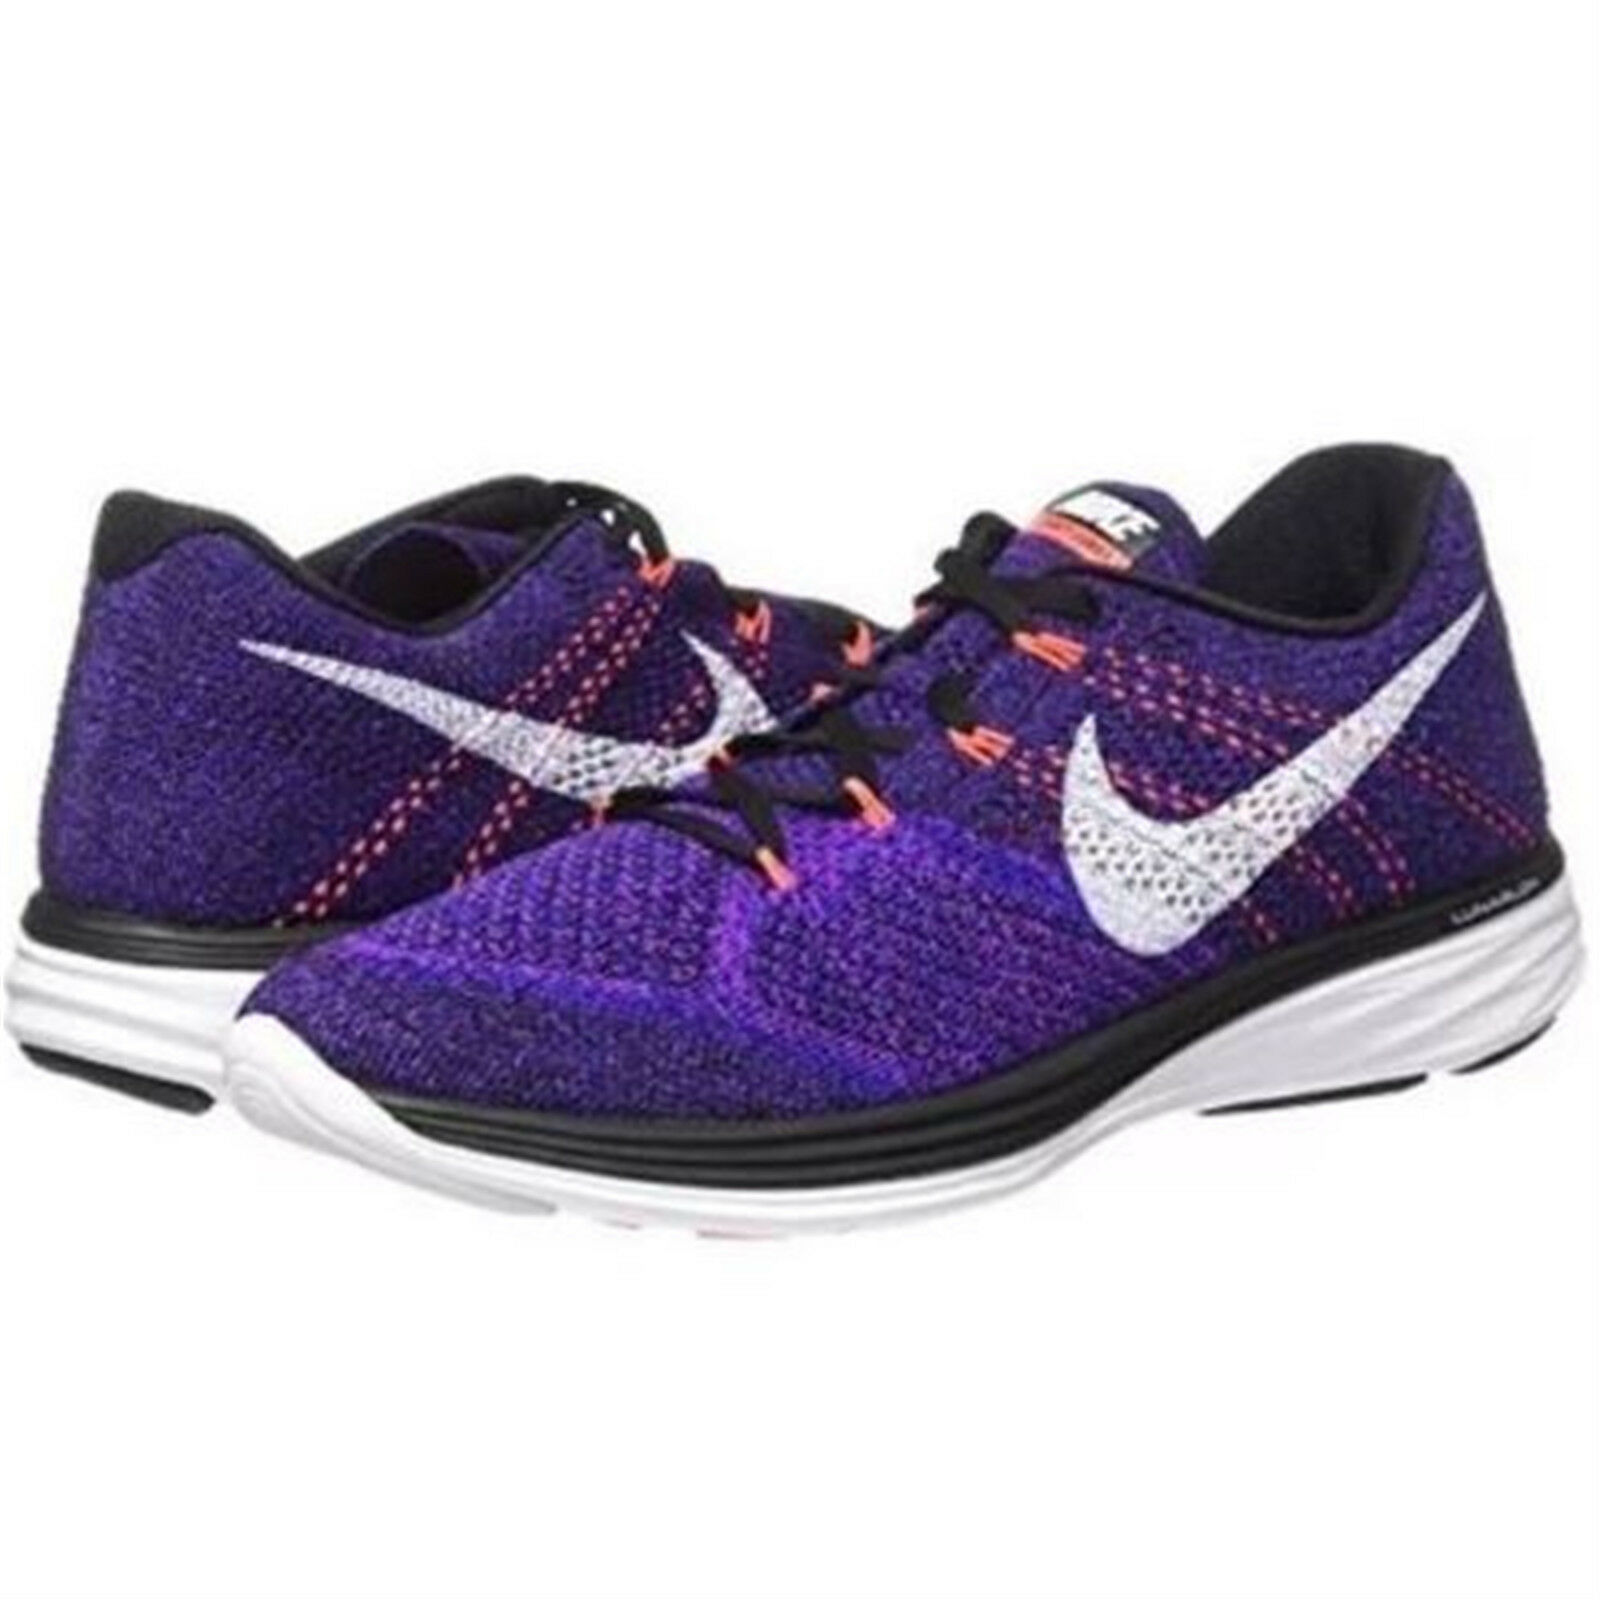 NIKE FLYKNIT LUNAR3 <698181 - 014> Men's RUNNING-SNEAKERS Shoes,New with Box